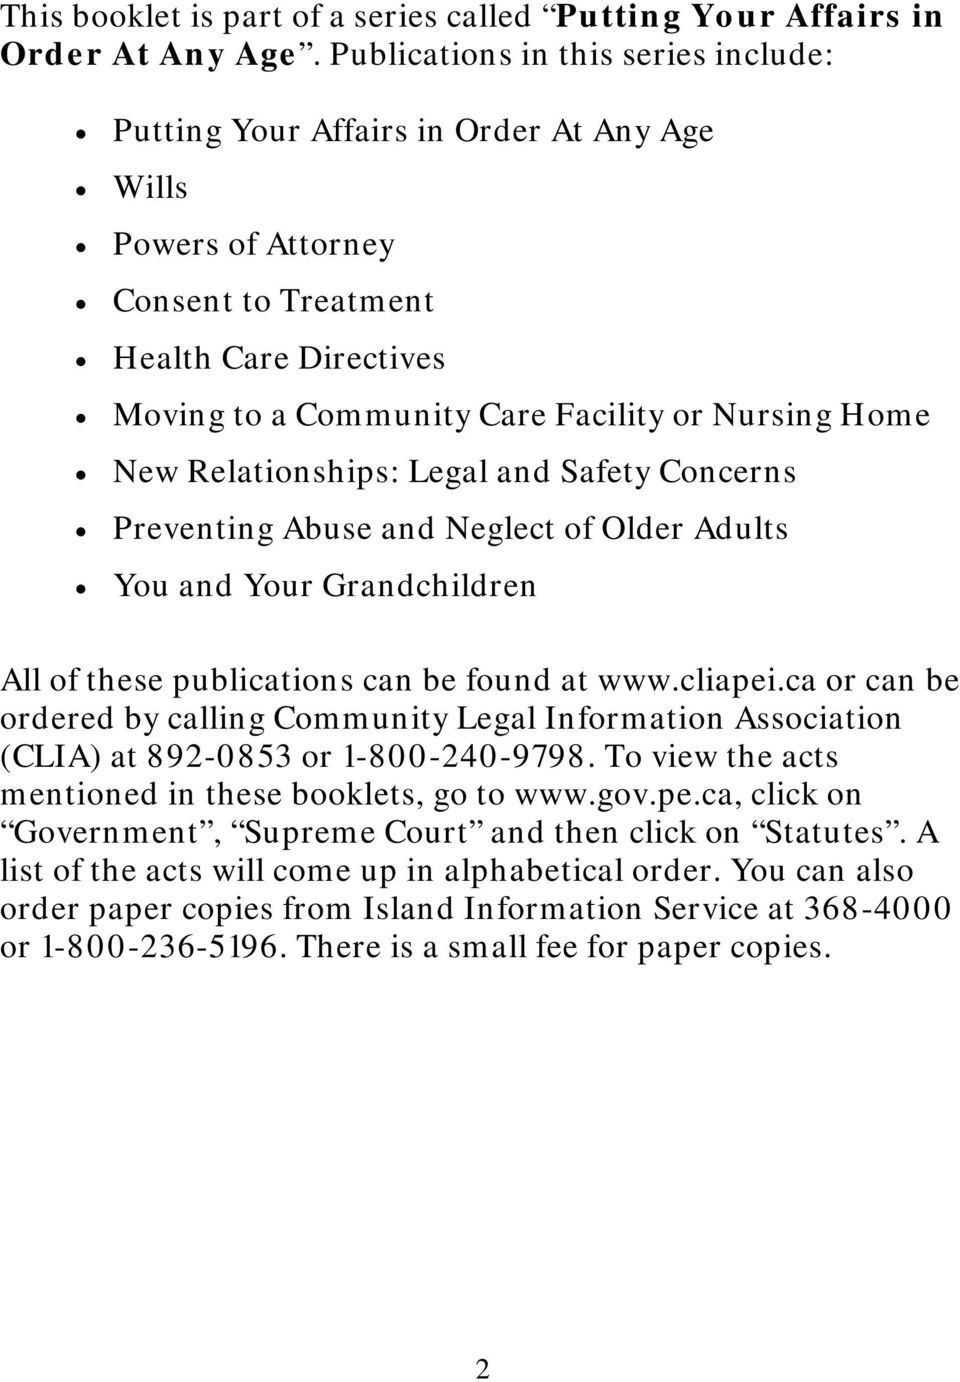 New Relationships: Legal and Safety Concerns Preventing Abuse and Neglect of Older Adults You and Your Grandchildren All of these publications can be found at www.cliapei.